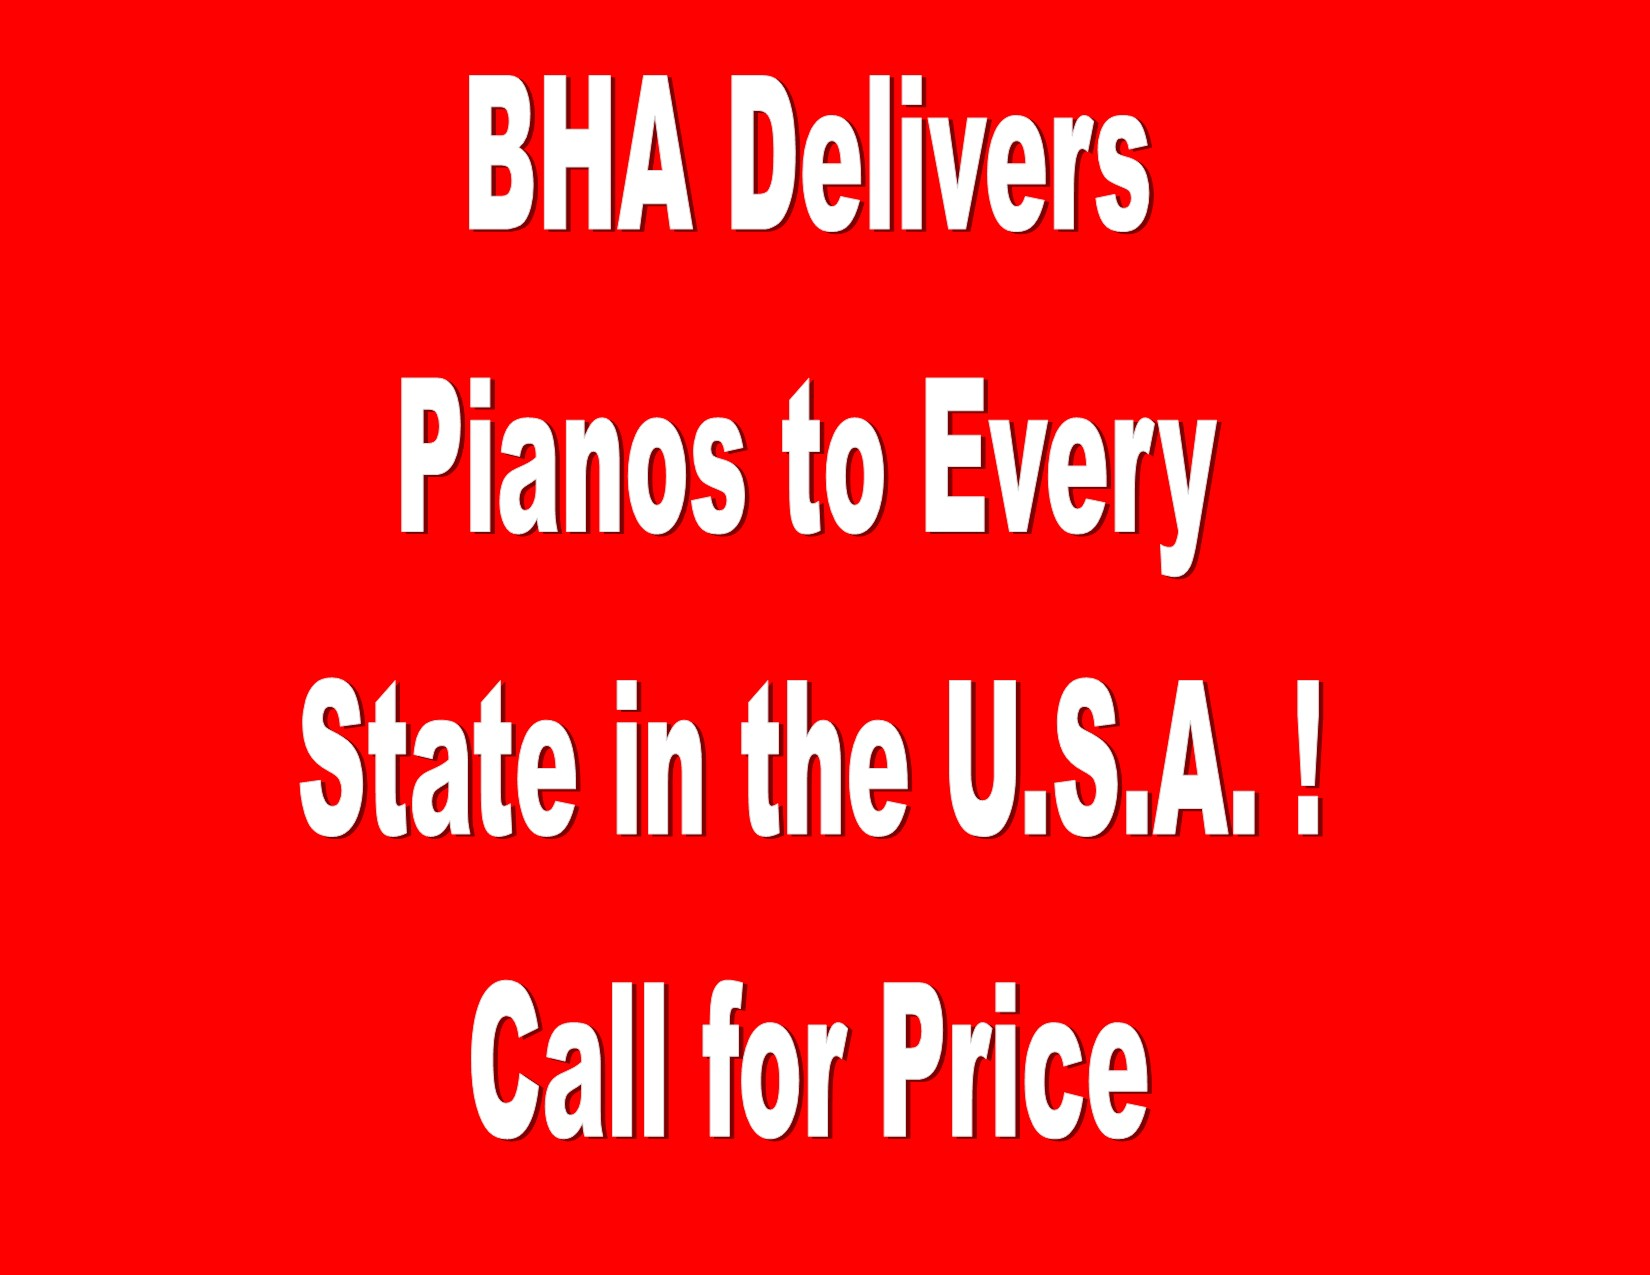 11215- BHA DELIVERS PIANOS TO EVERY STATE IN THE U.S.A. ! CALL FOR PRICE